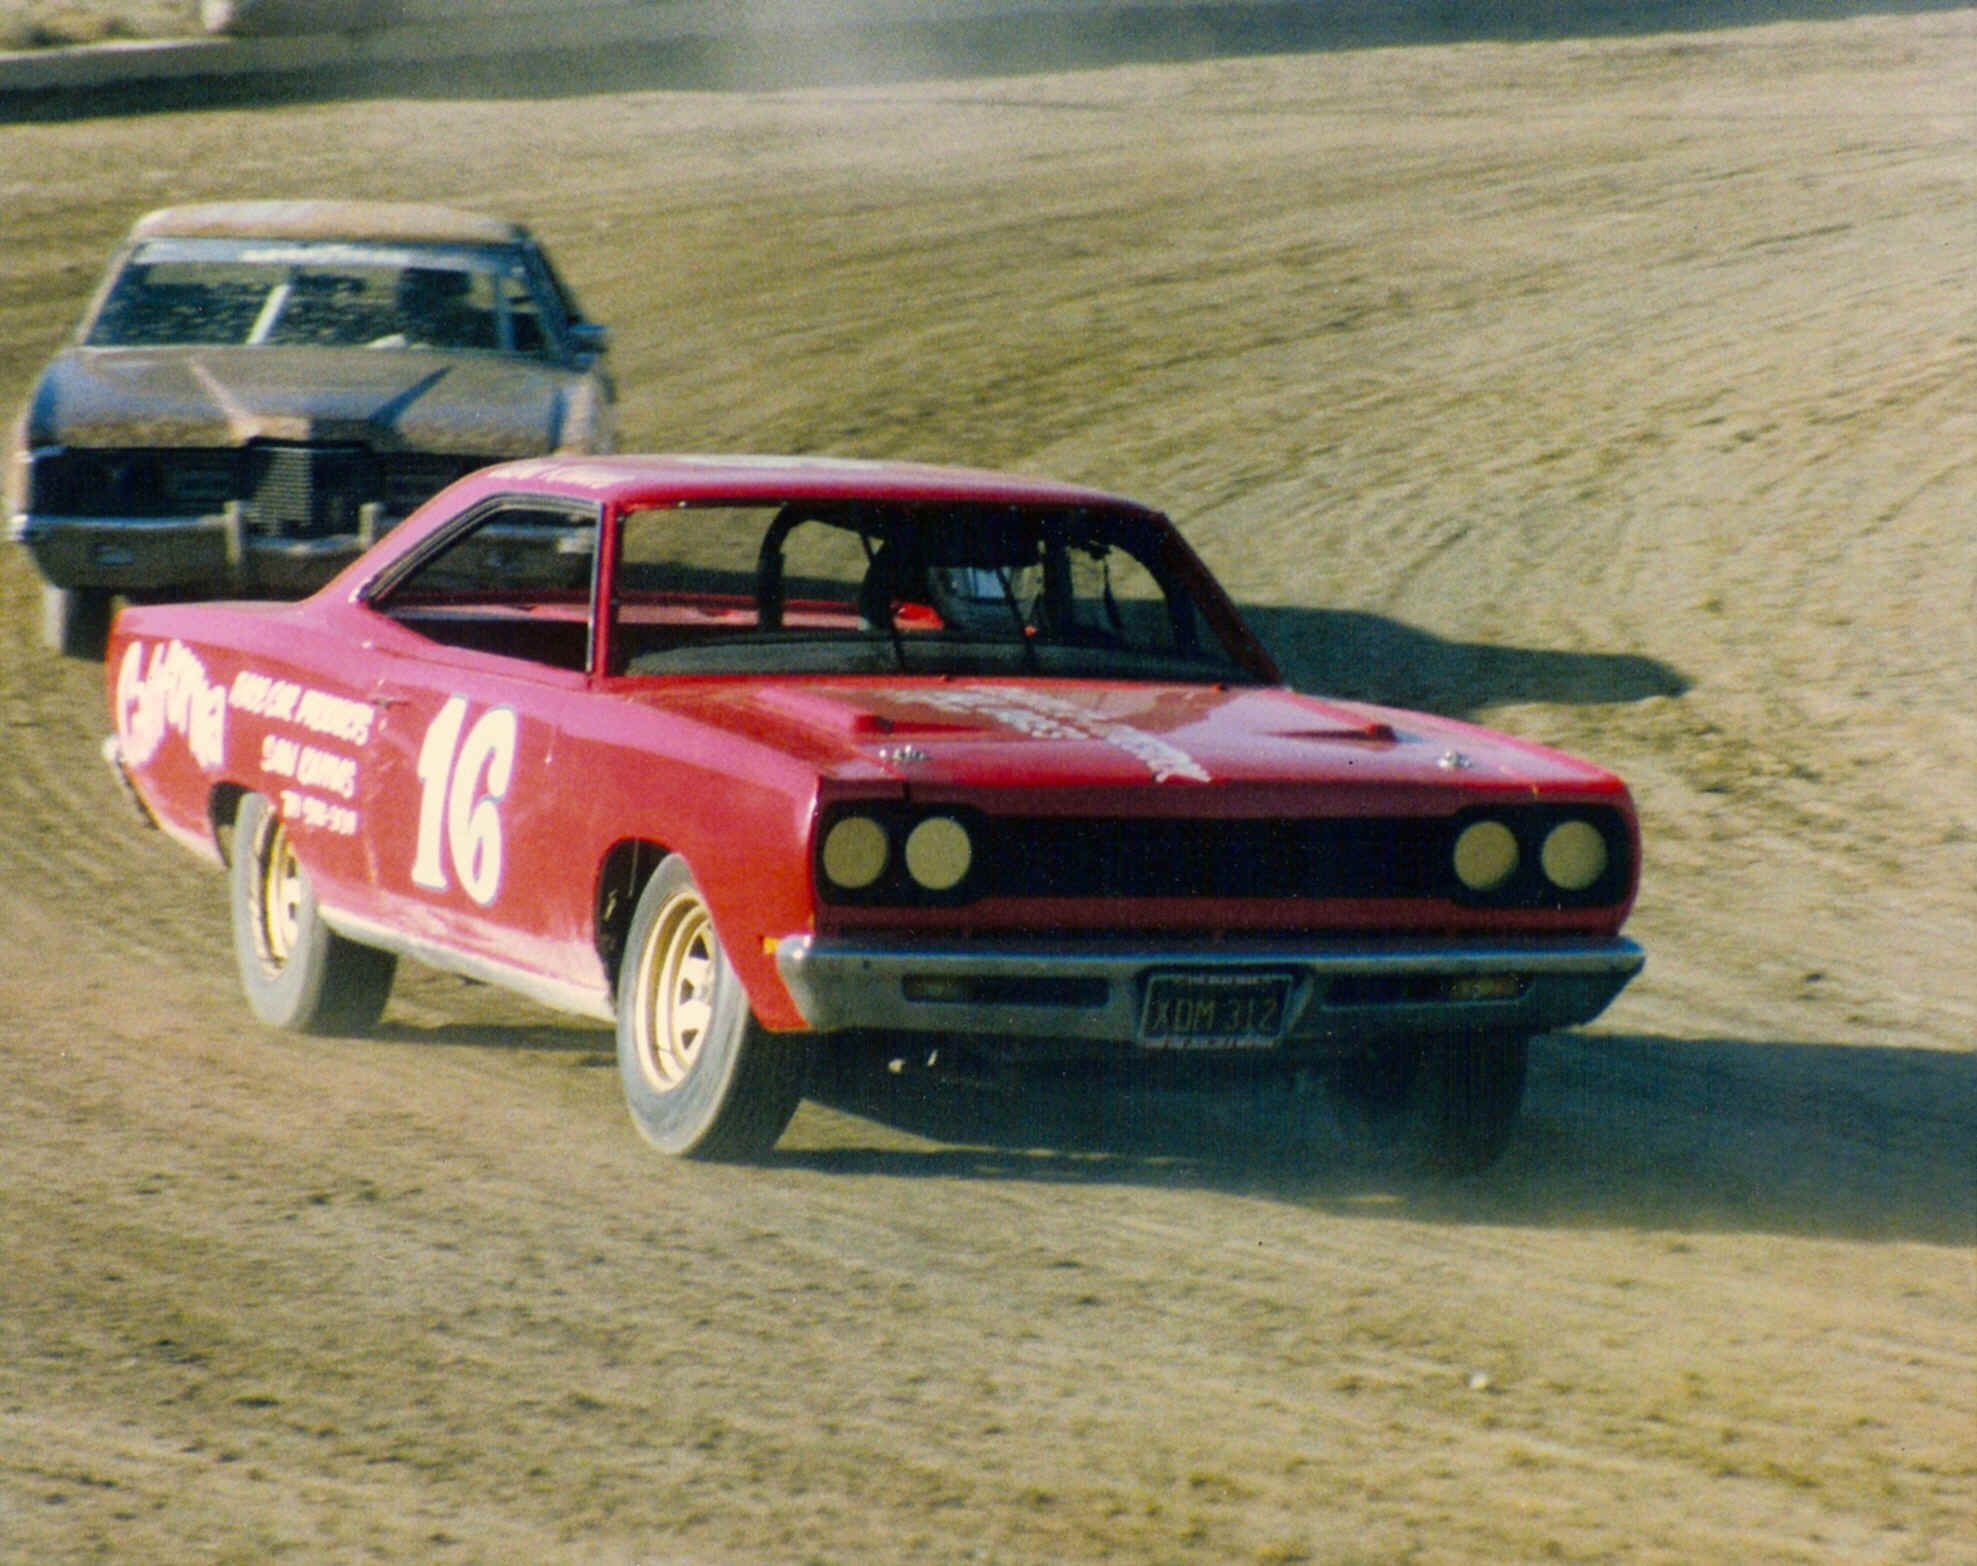 driven stock car racing and the cars literally look like this one bucket list done at least once pinterest cars dirt track and dirt track